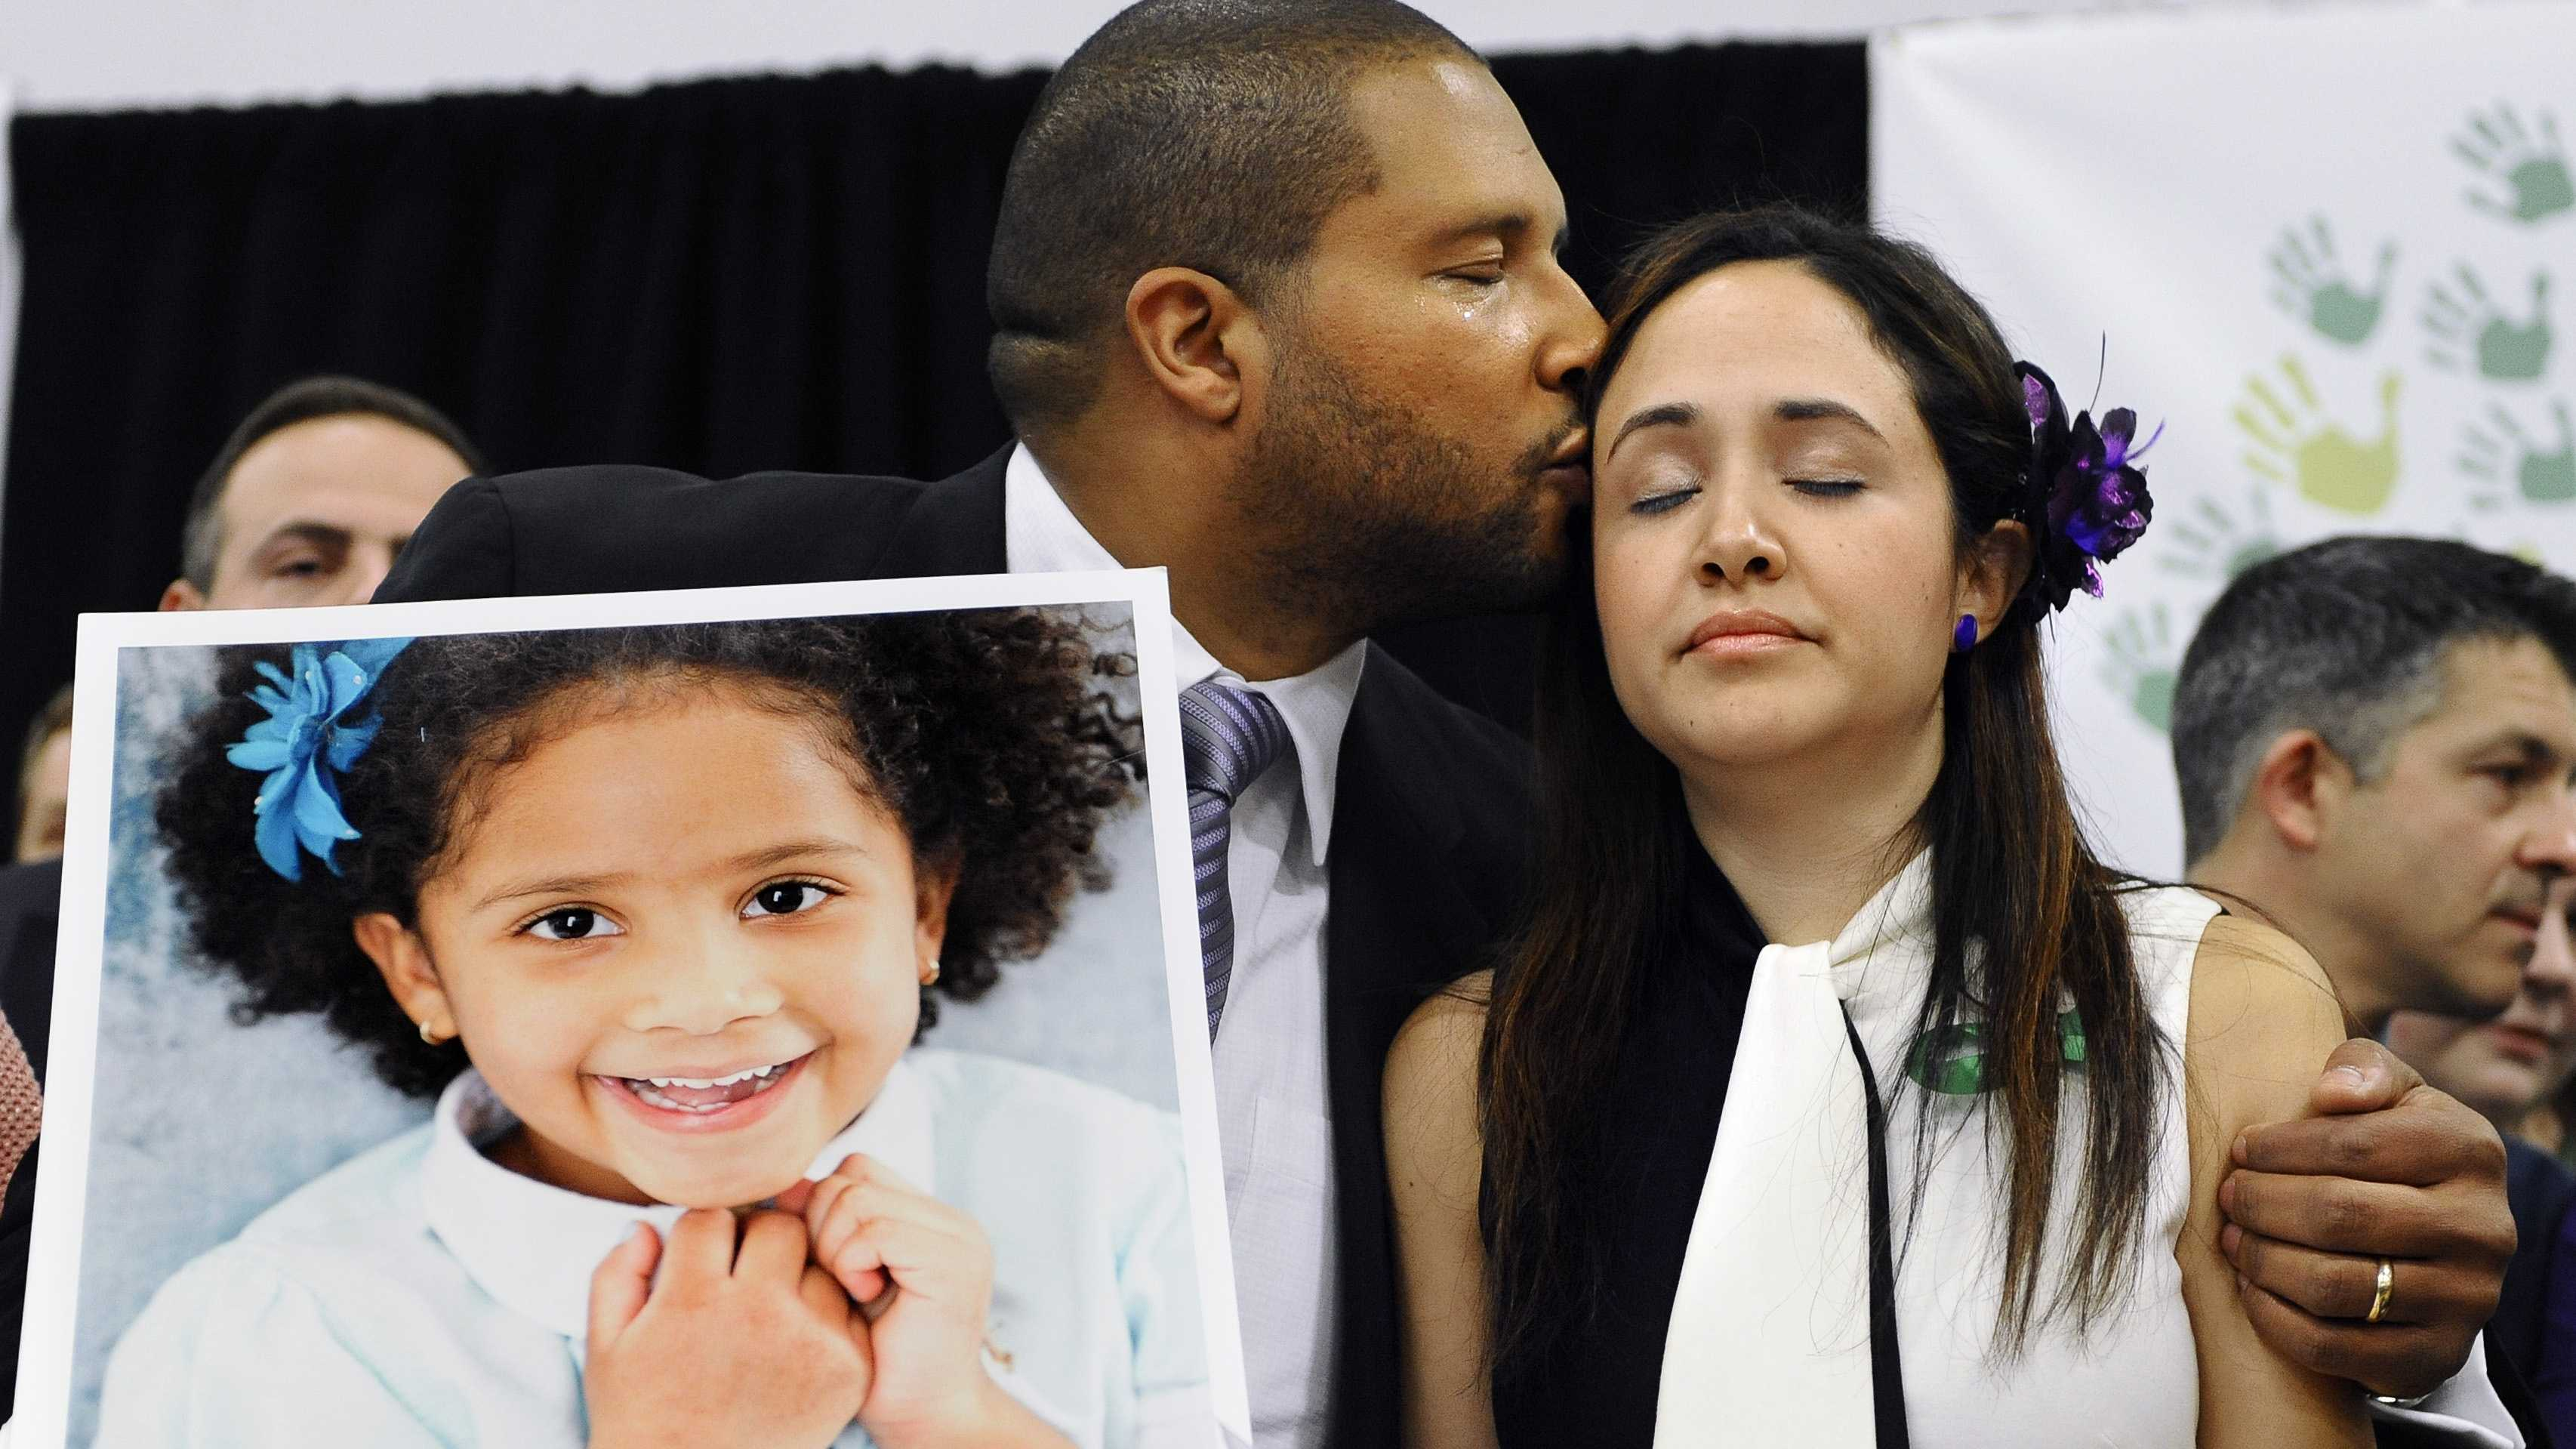 Jimmy Greene holds a portrait of his daughter Sandy Hook School shooting victim Ana Marquez-Greene on Jan. 14, 2013. One month after the mass school shooting at Sandy Hook Elementary School, the parents joined a grassroots initiative called Sandy Hook Promise to support solutions for a safer community.